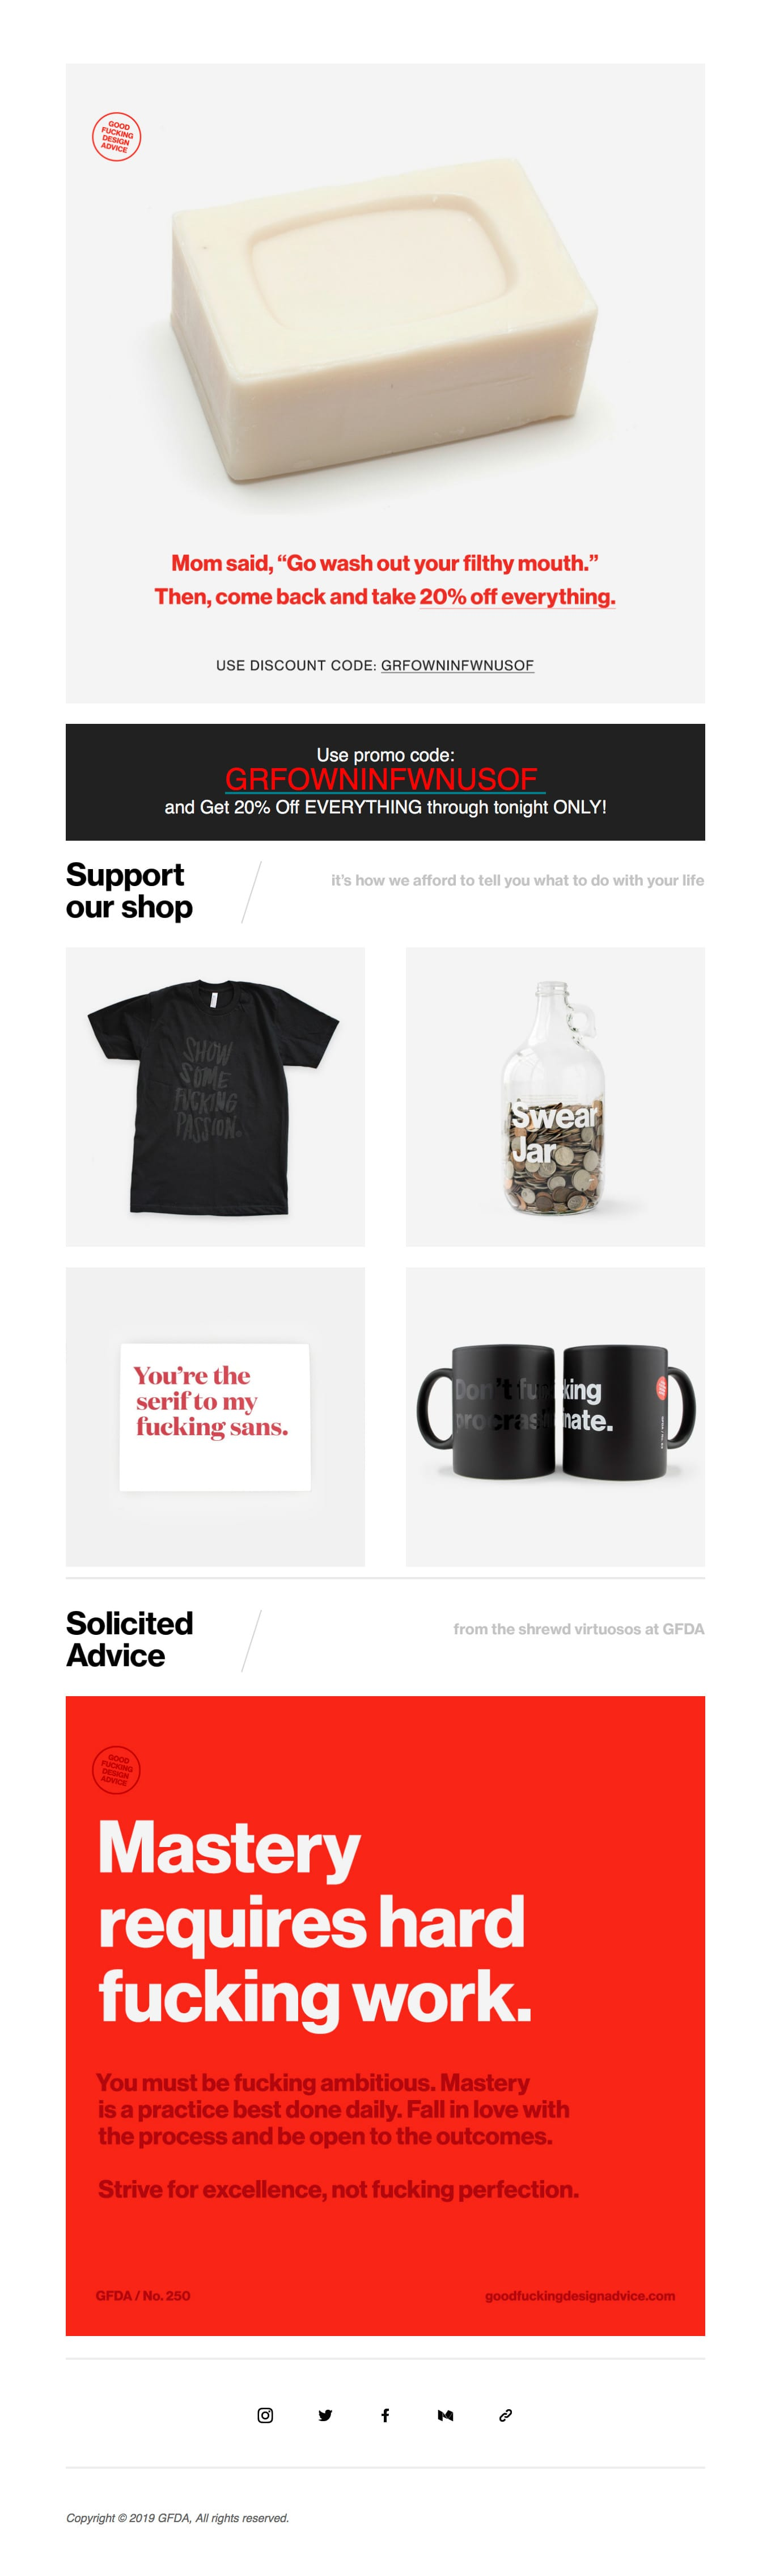 20% Off EVERYTHING Email Screenshot